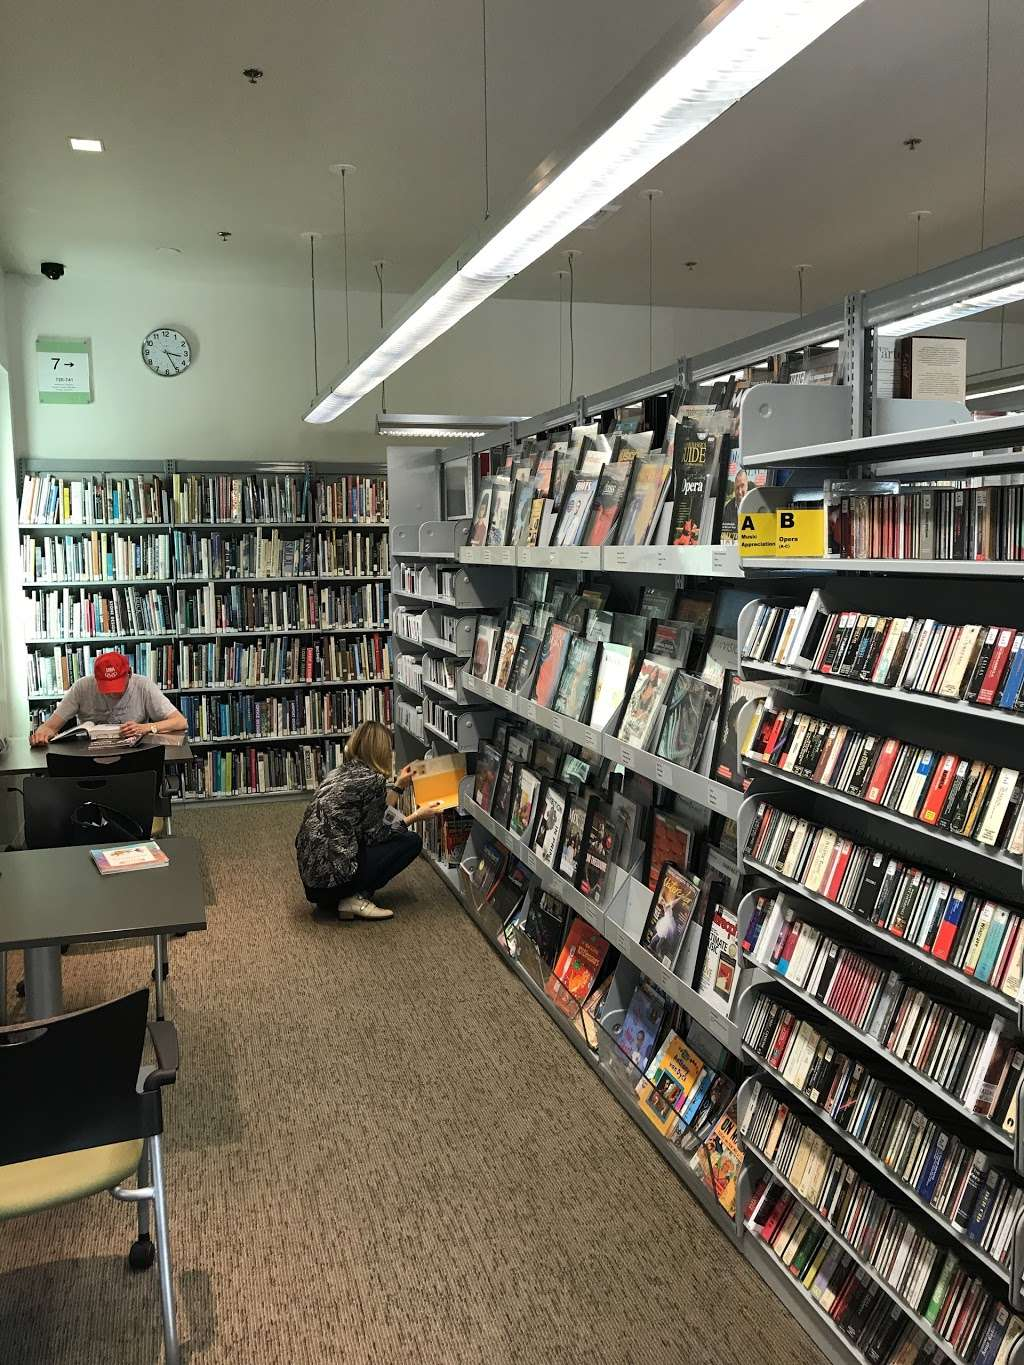 Brand Library & Art Center - library    Photo 4 of 10   Address: 1601 W Mountain St, Glendale, CA 91201, USA   Phone: (818) 548-2051